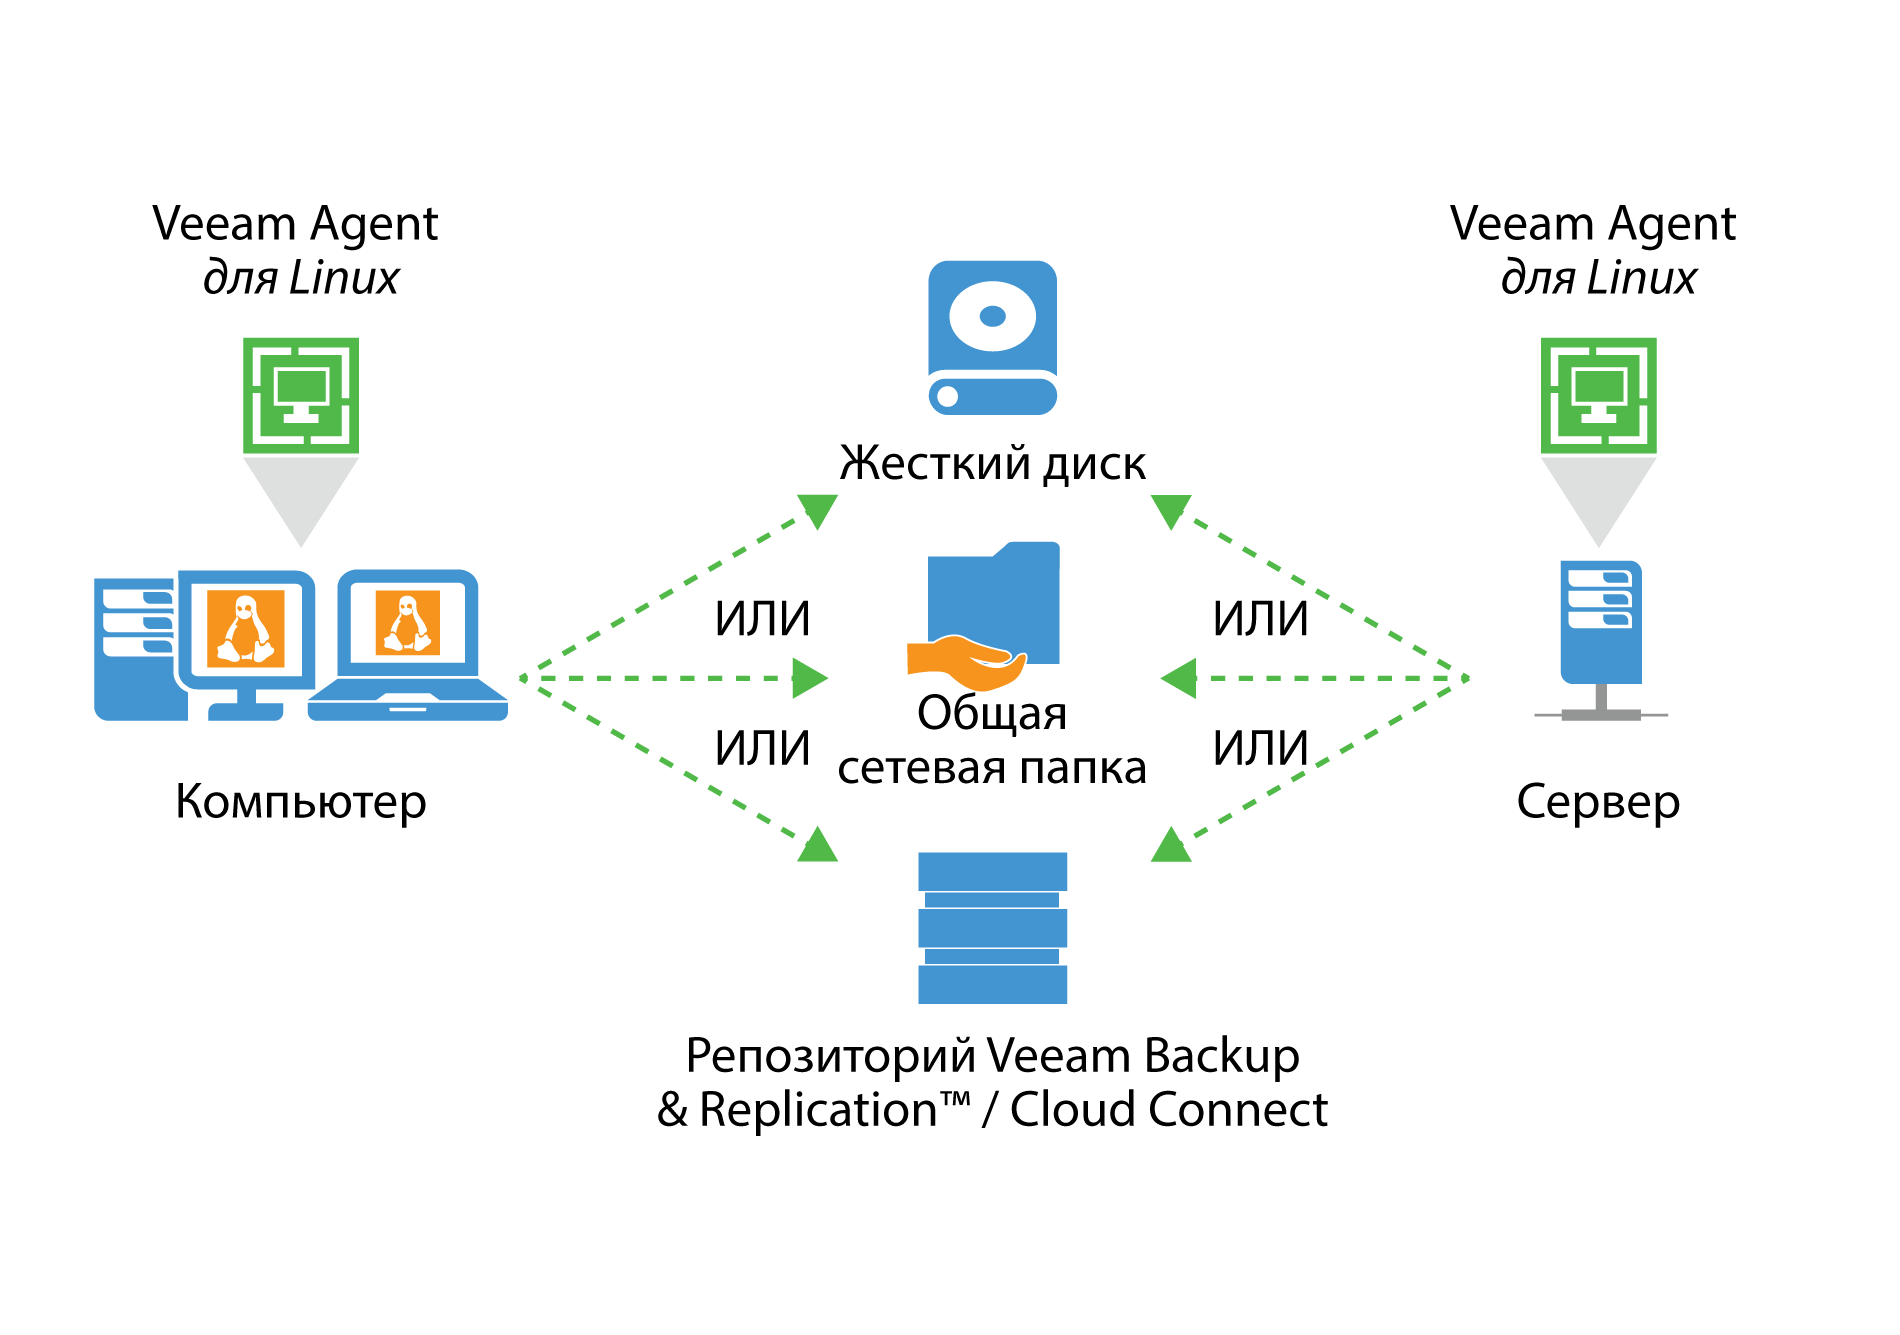 veeam_endpoint_how_it_works_for_linux_ru.png